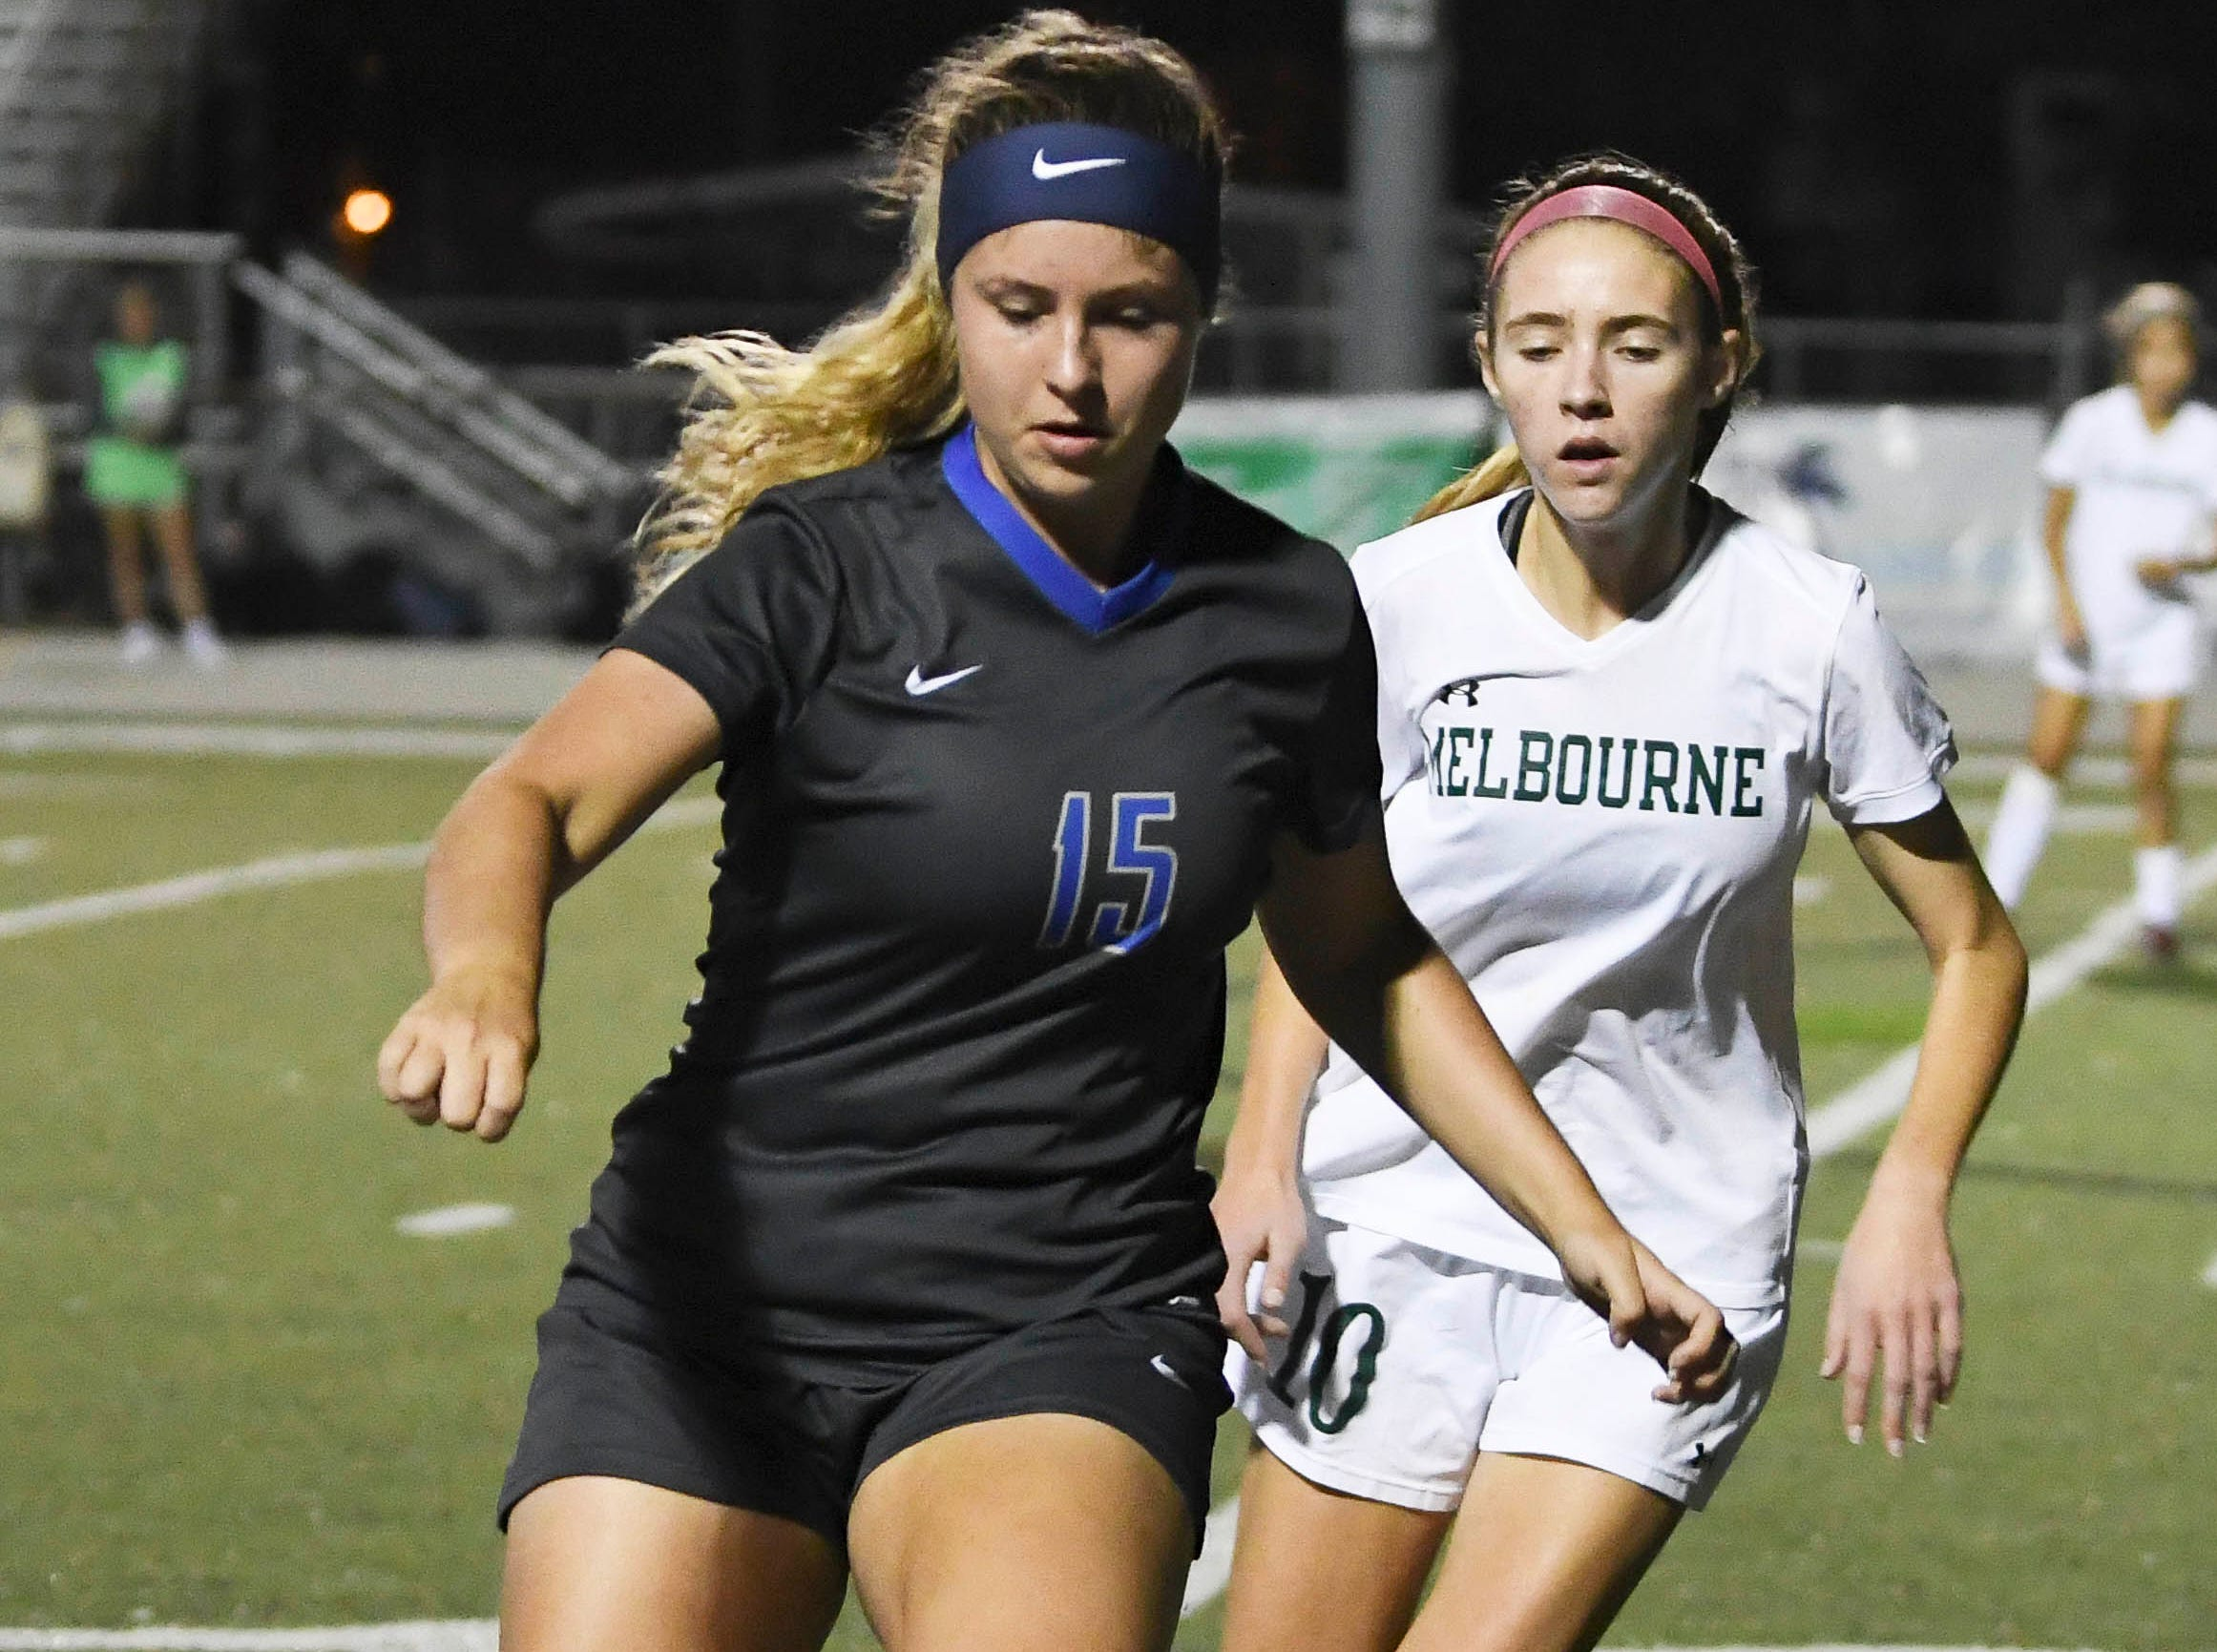 Sonya Carmona of Cypress Bay controls the ball in front of Melbourne defender Carter Register during Thursday's game.